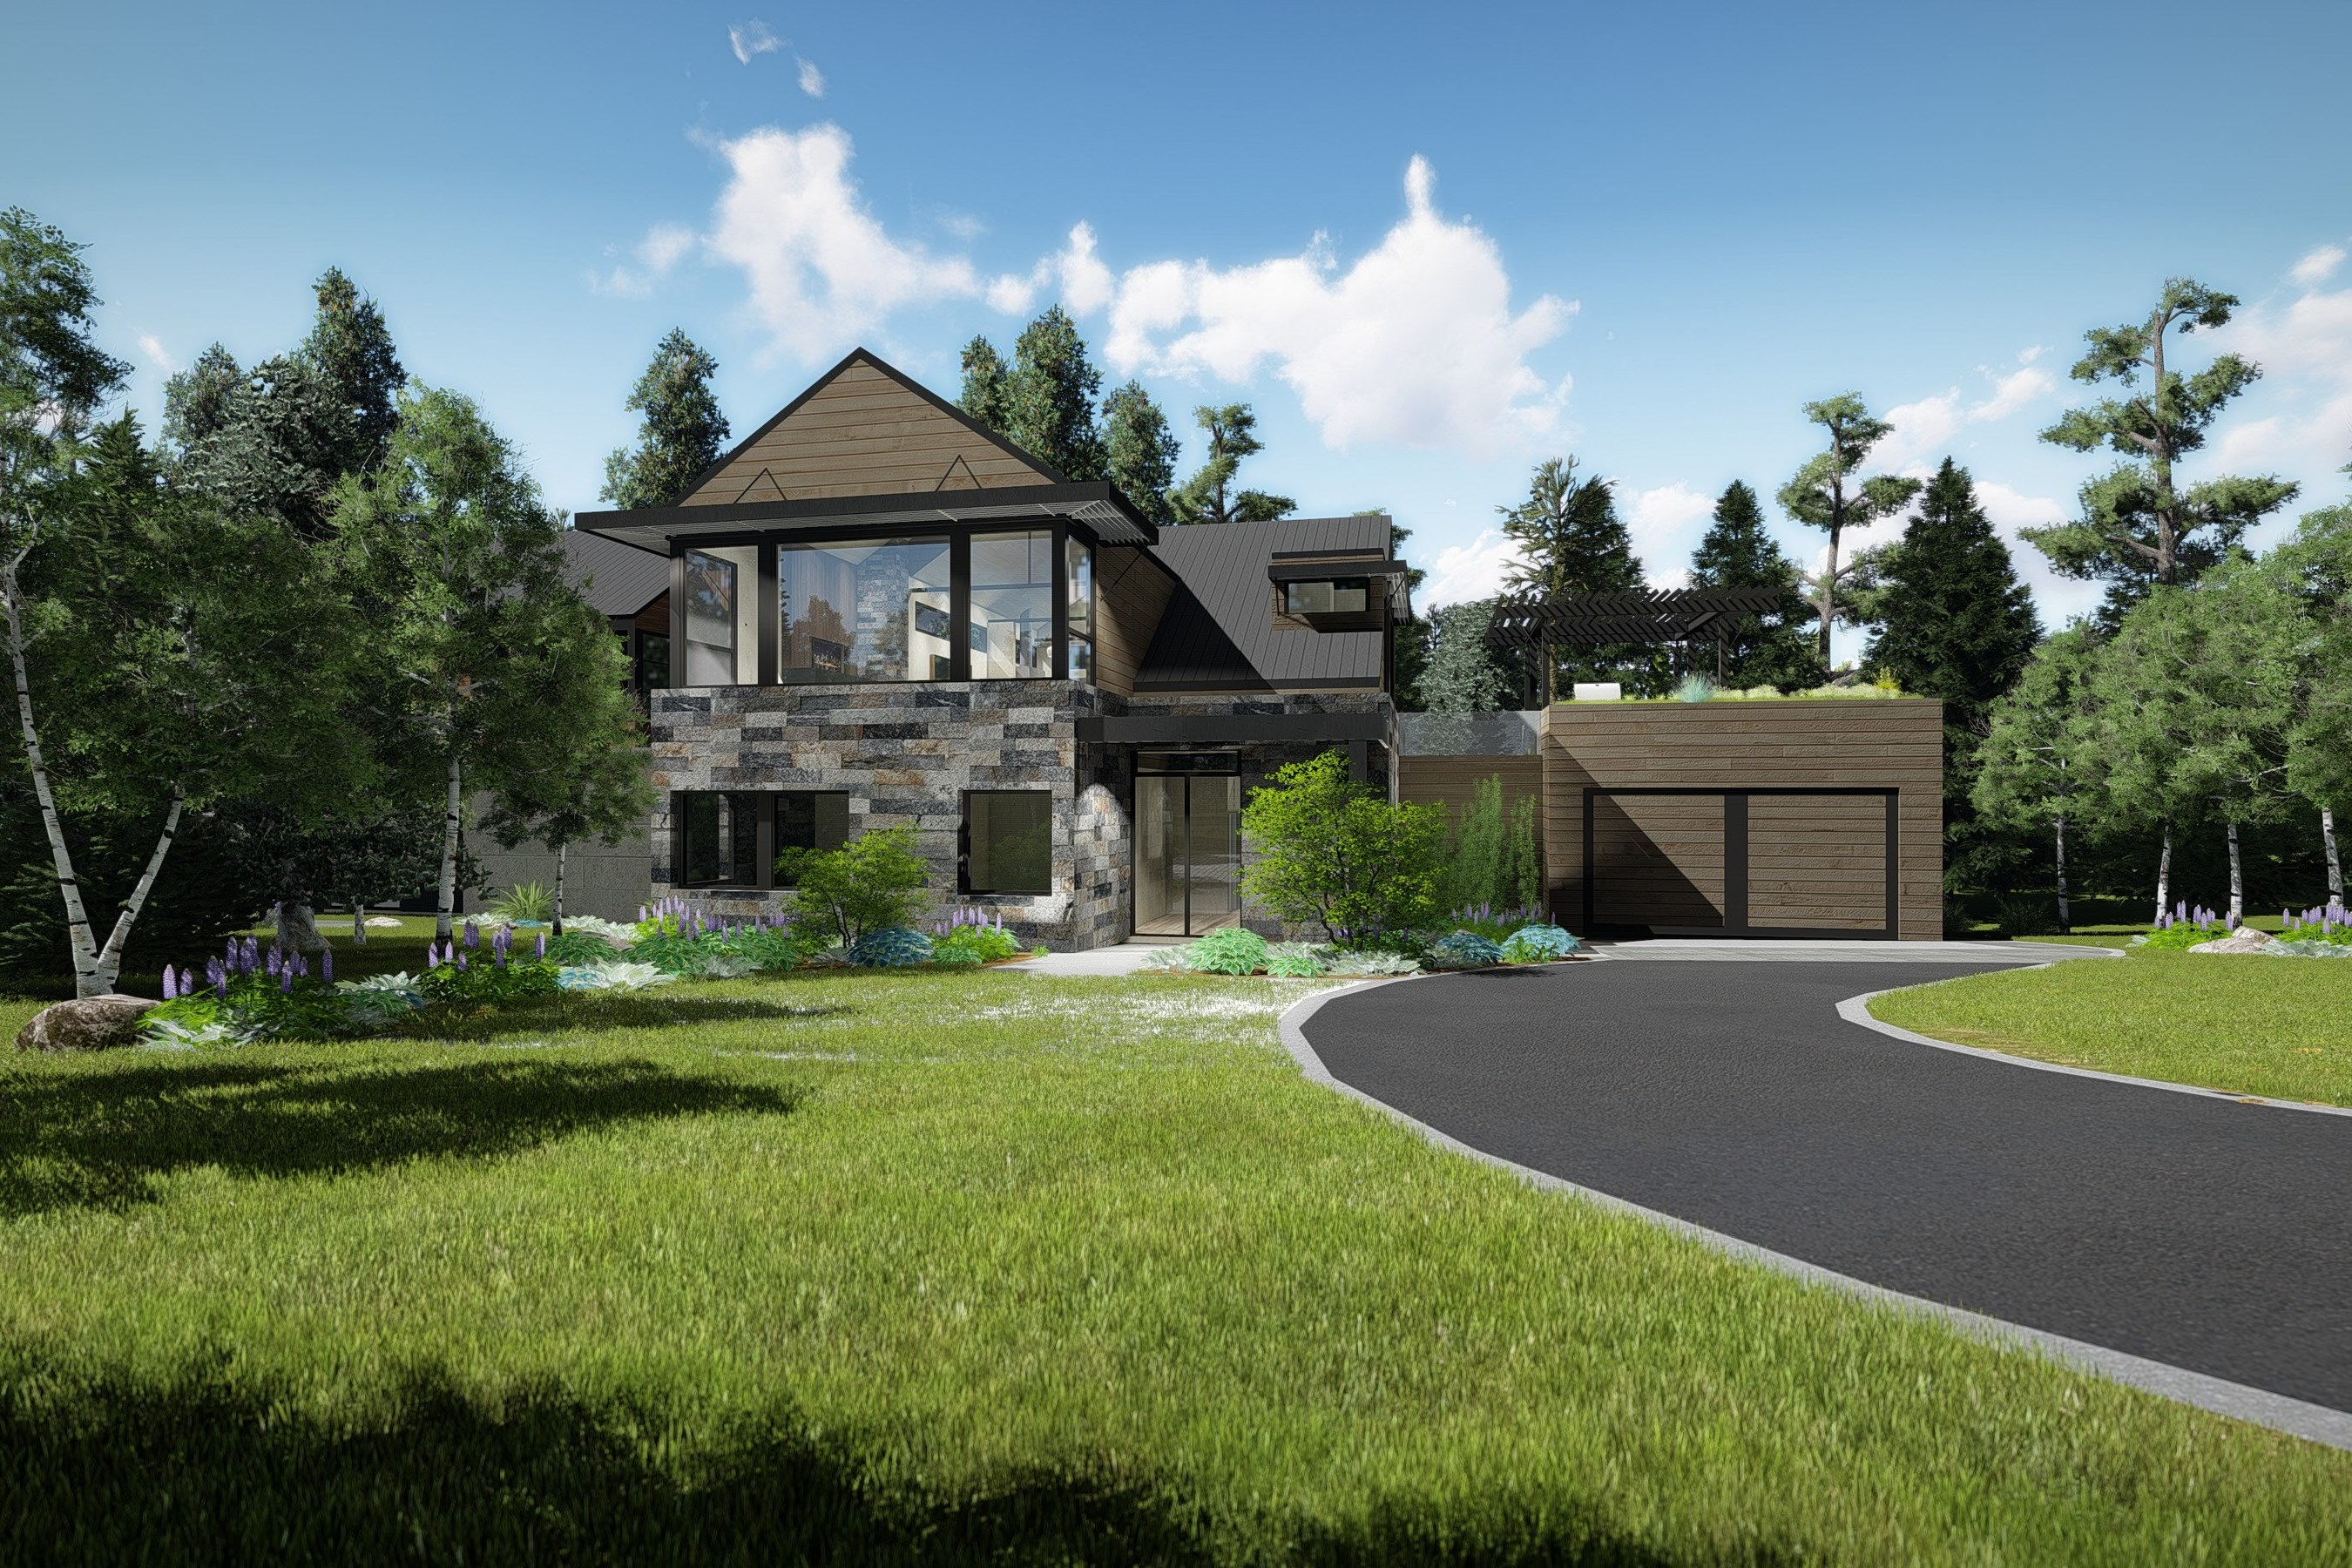 дуплекс для того Продажа на Brand New Residence in the West End 675 Meadows Road Aspen, Колорадо, 81611 Соединенные Штаты